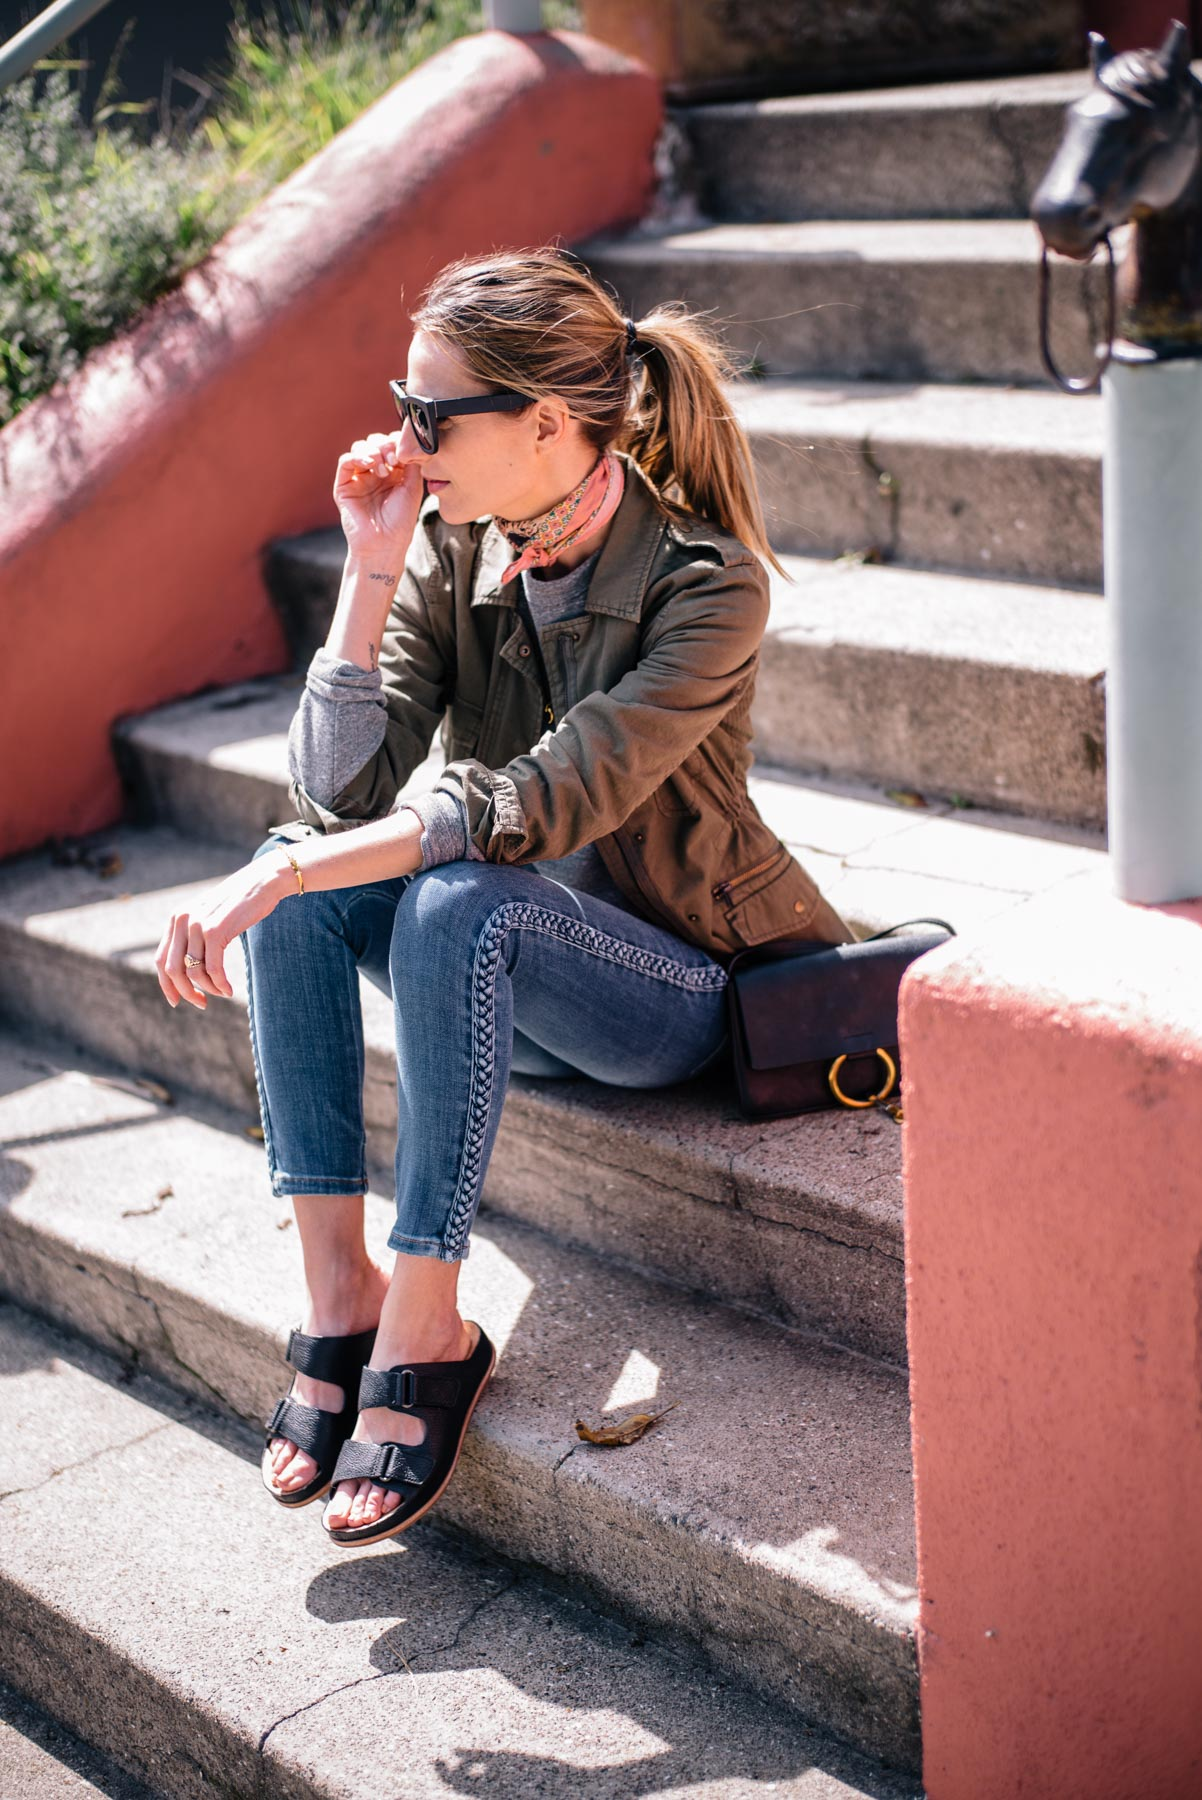 Jess Ann Kirby loves Kork-Ease sandals for comfort during a trip to California